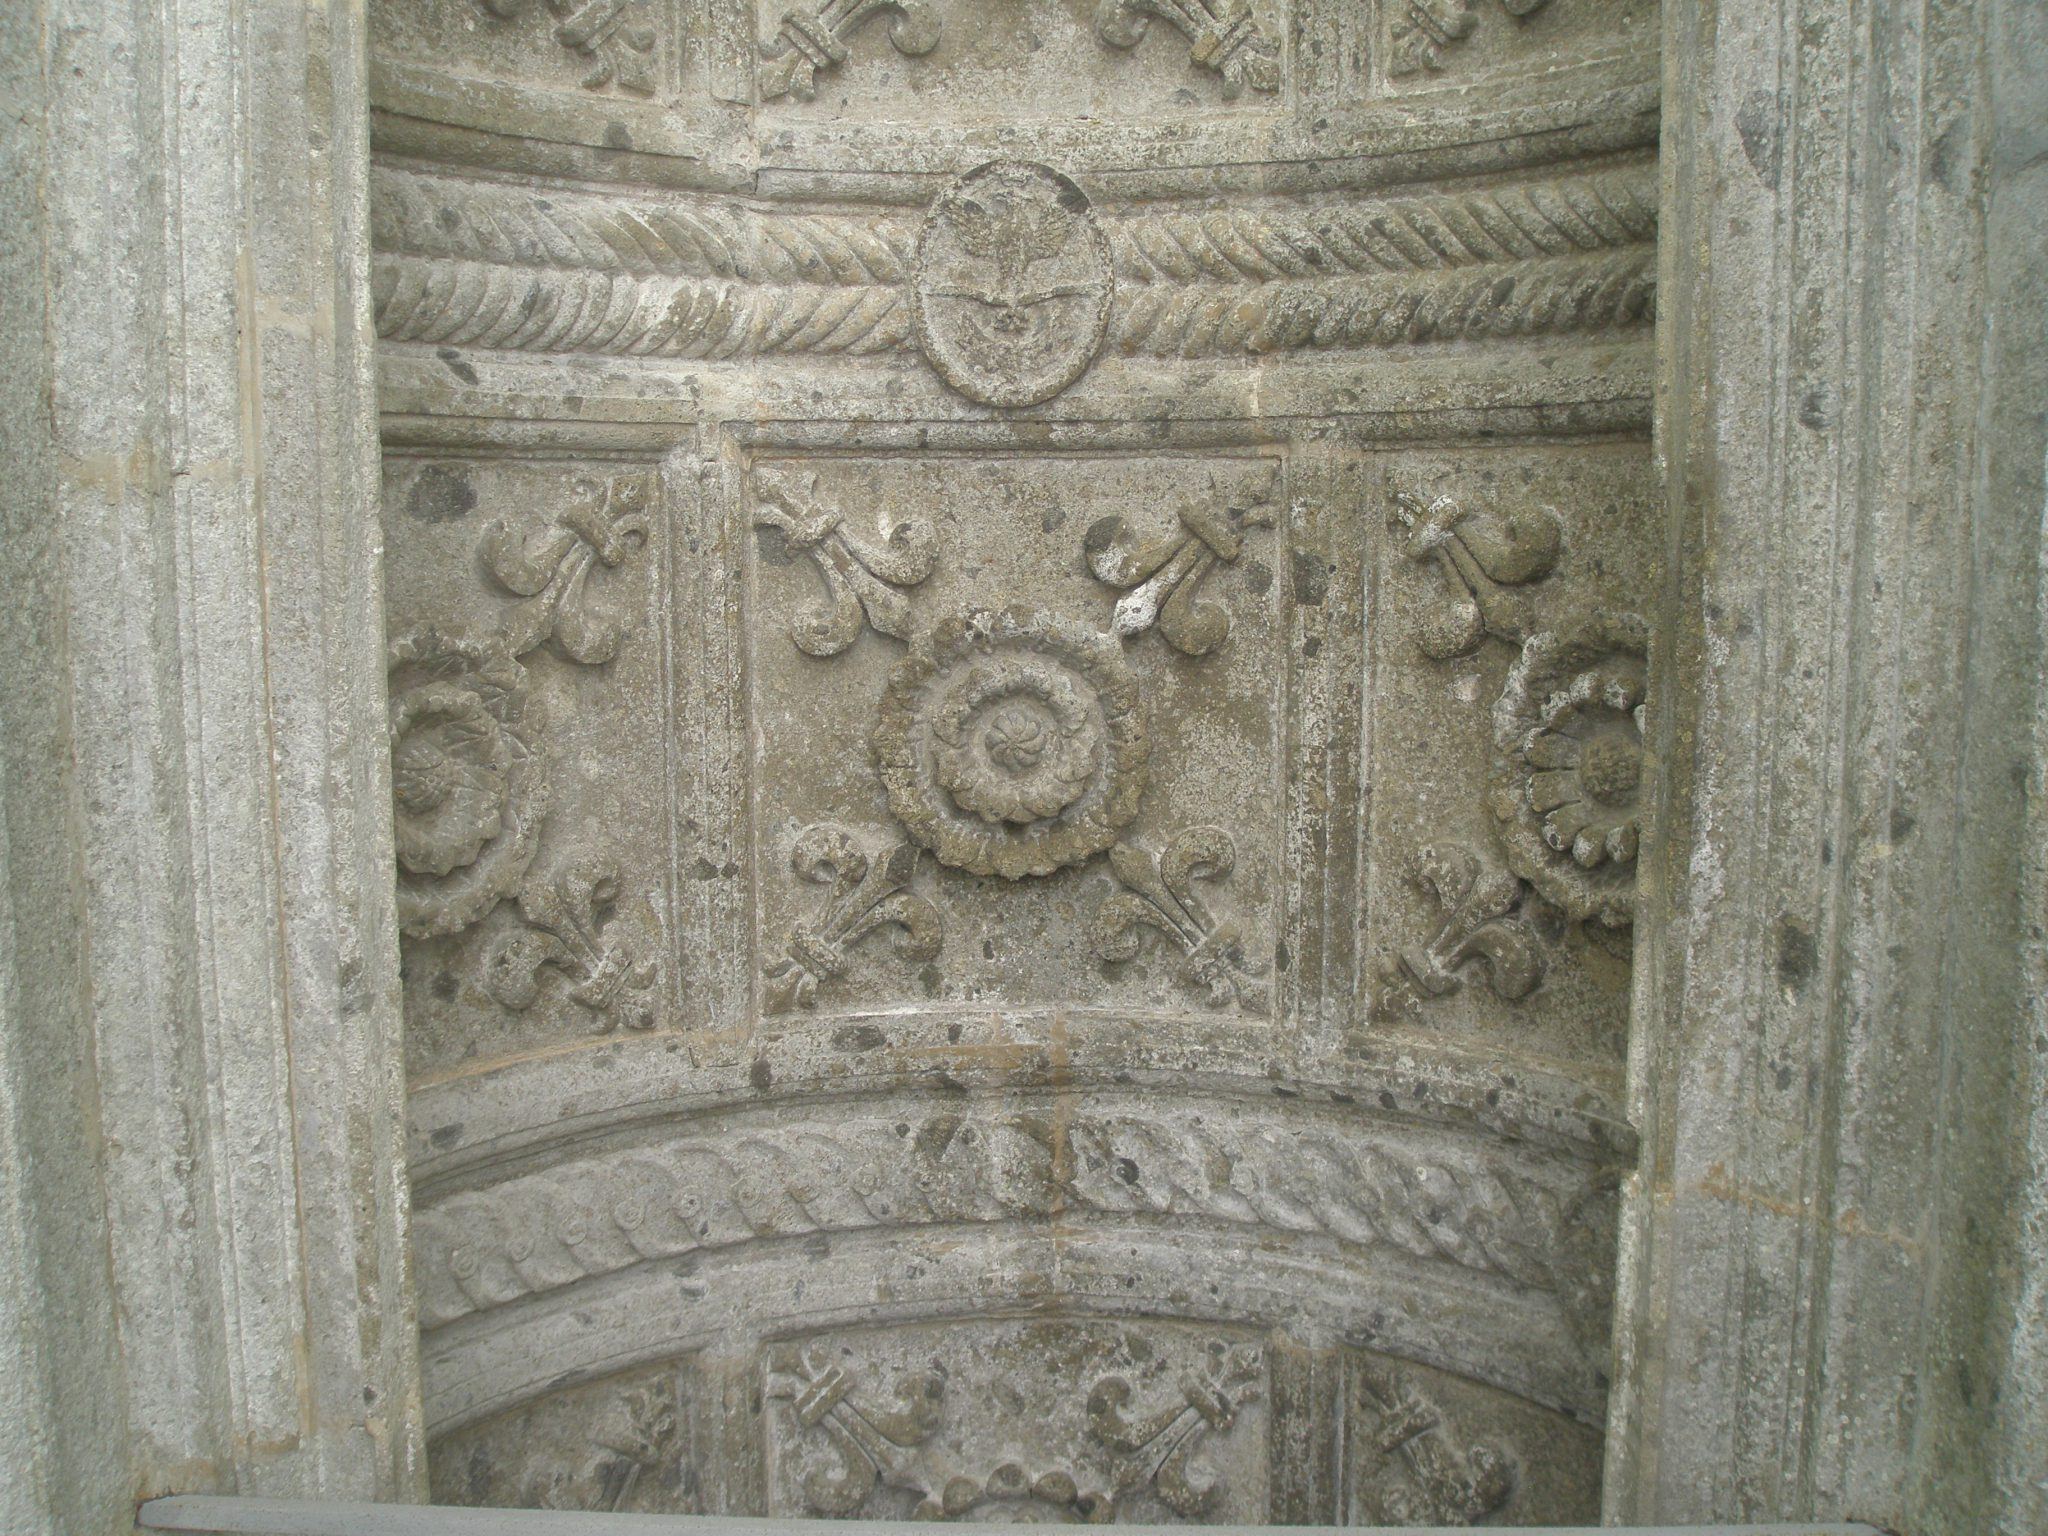 Carving on the vaulted ceiling of the Temple